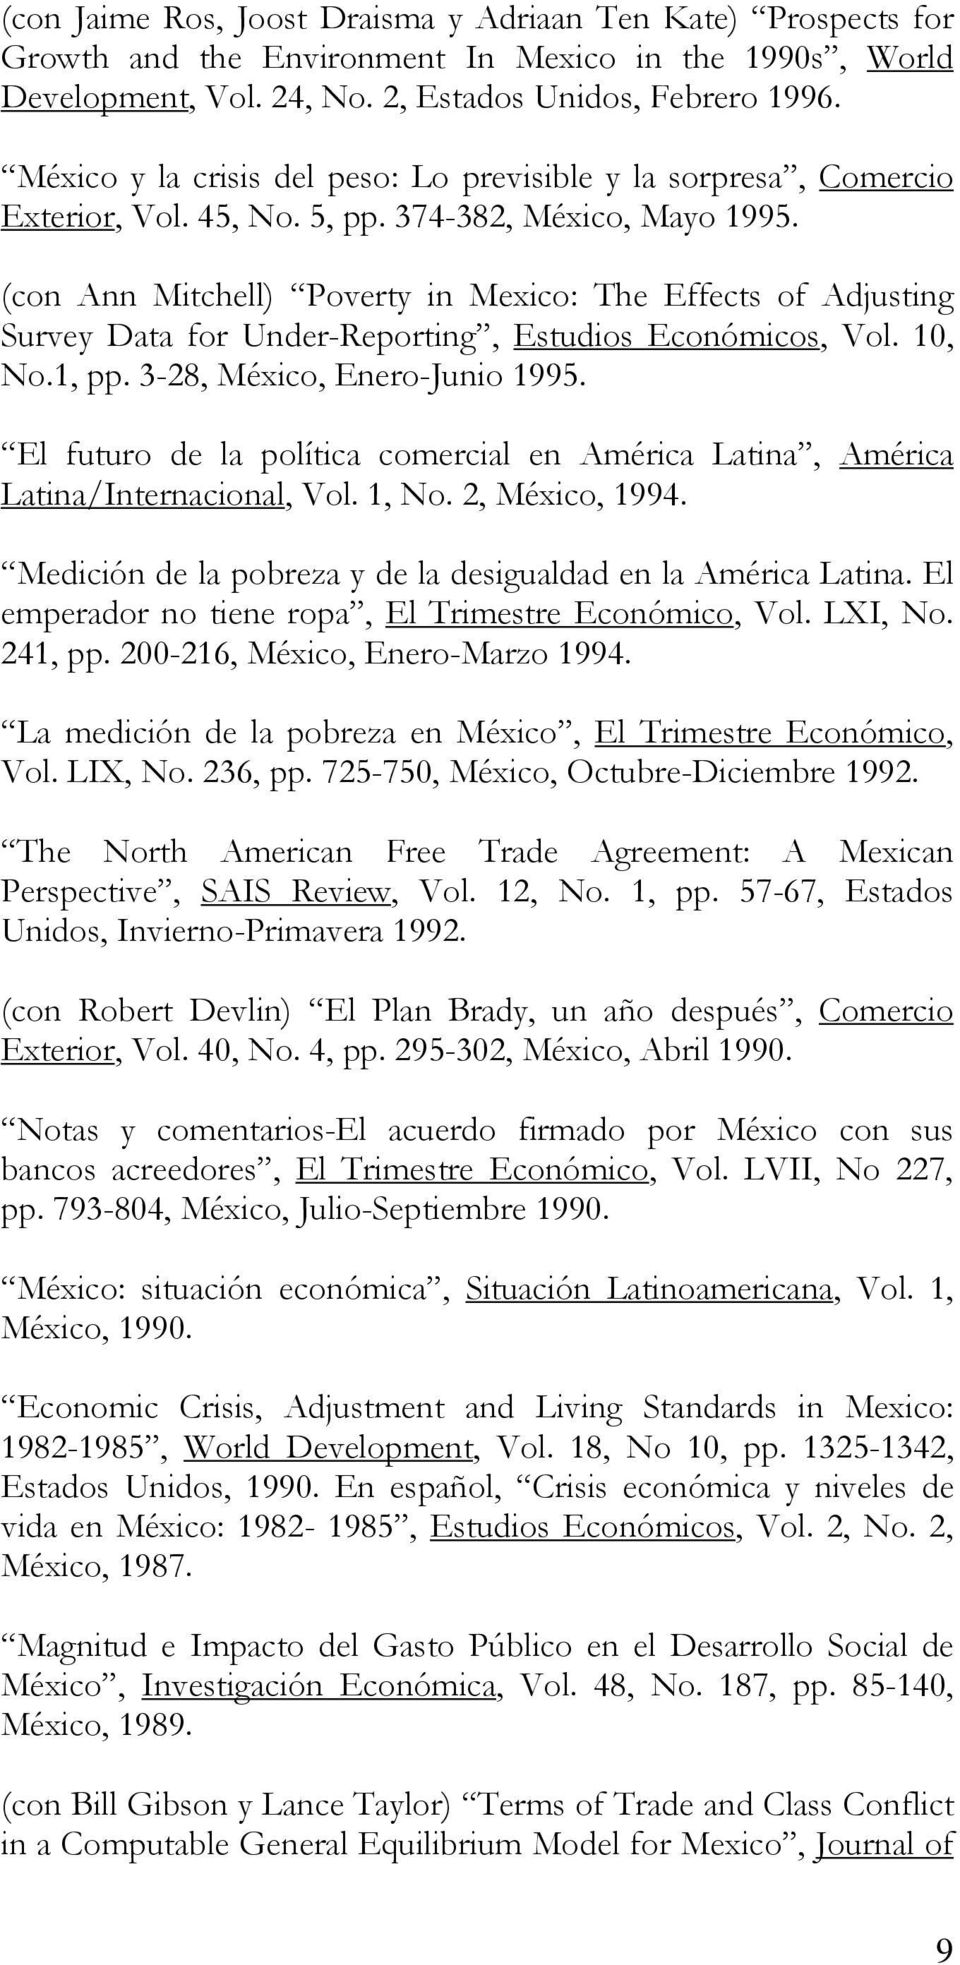 (con Ann Mitchell) Poverty in Mexico: The Effects of Adjusting Survey Data for Under-Reporting, Estudios Económicos, Vol. 10, No.1, pp. 3-28, México, Enero-Junio 1995.